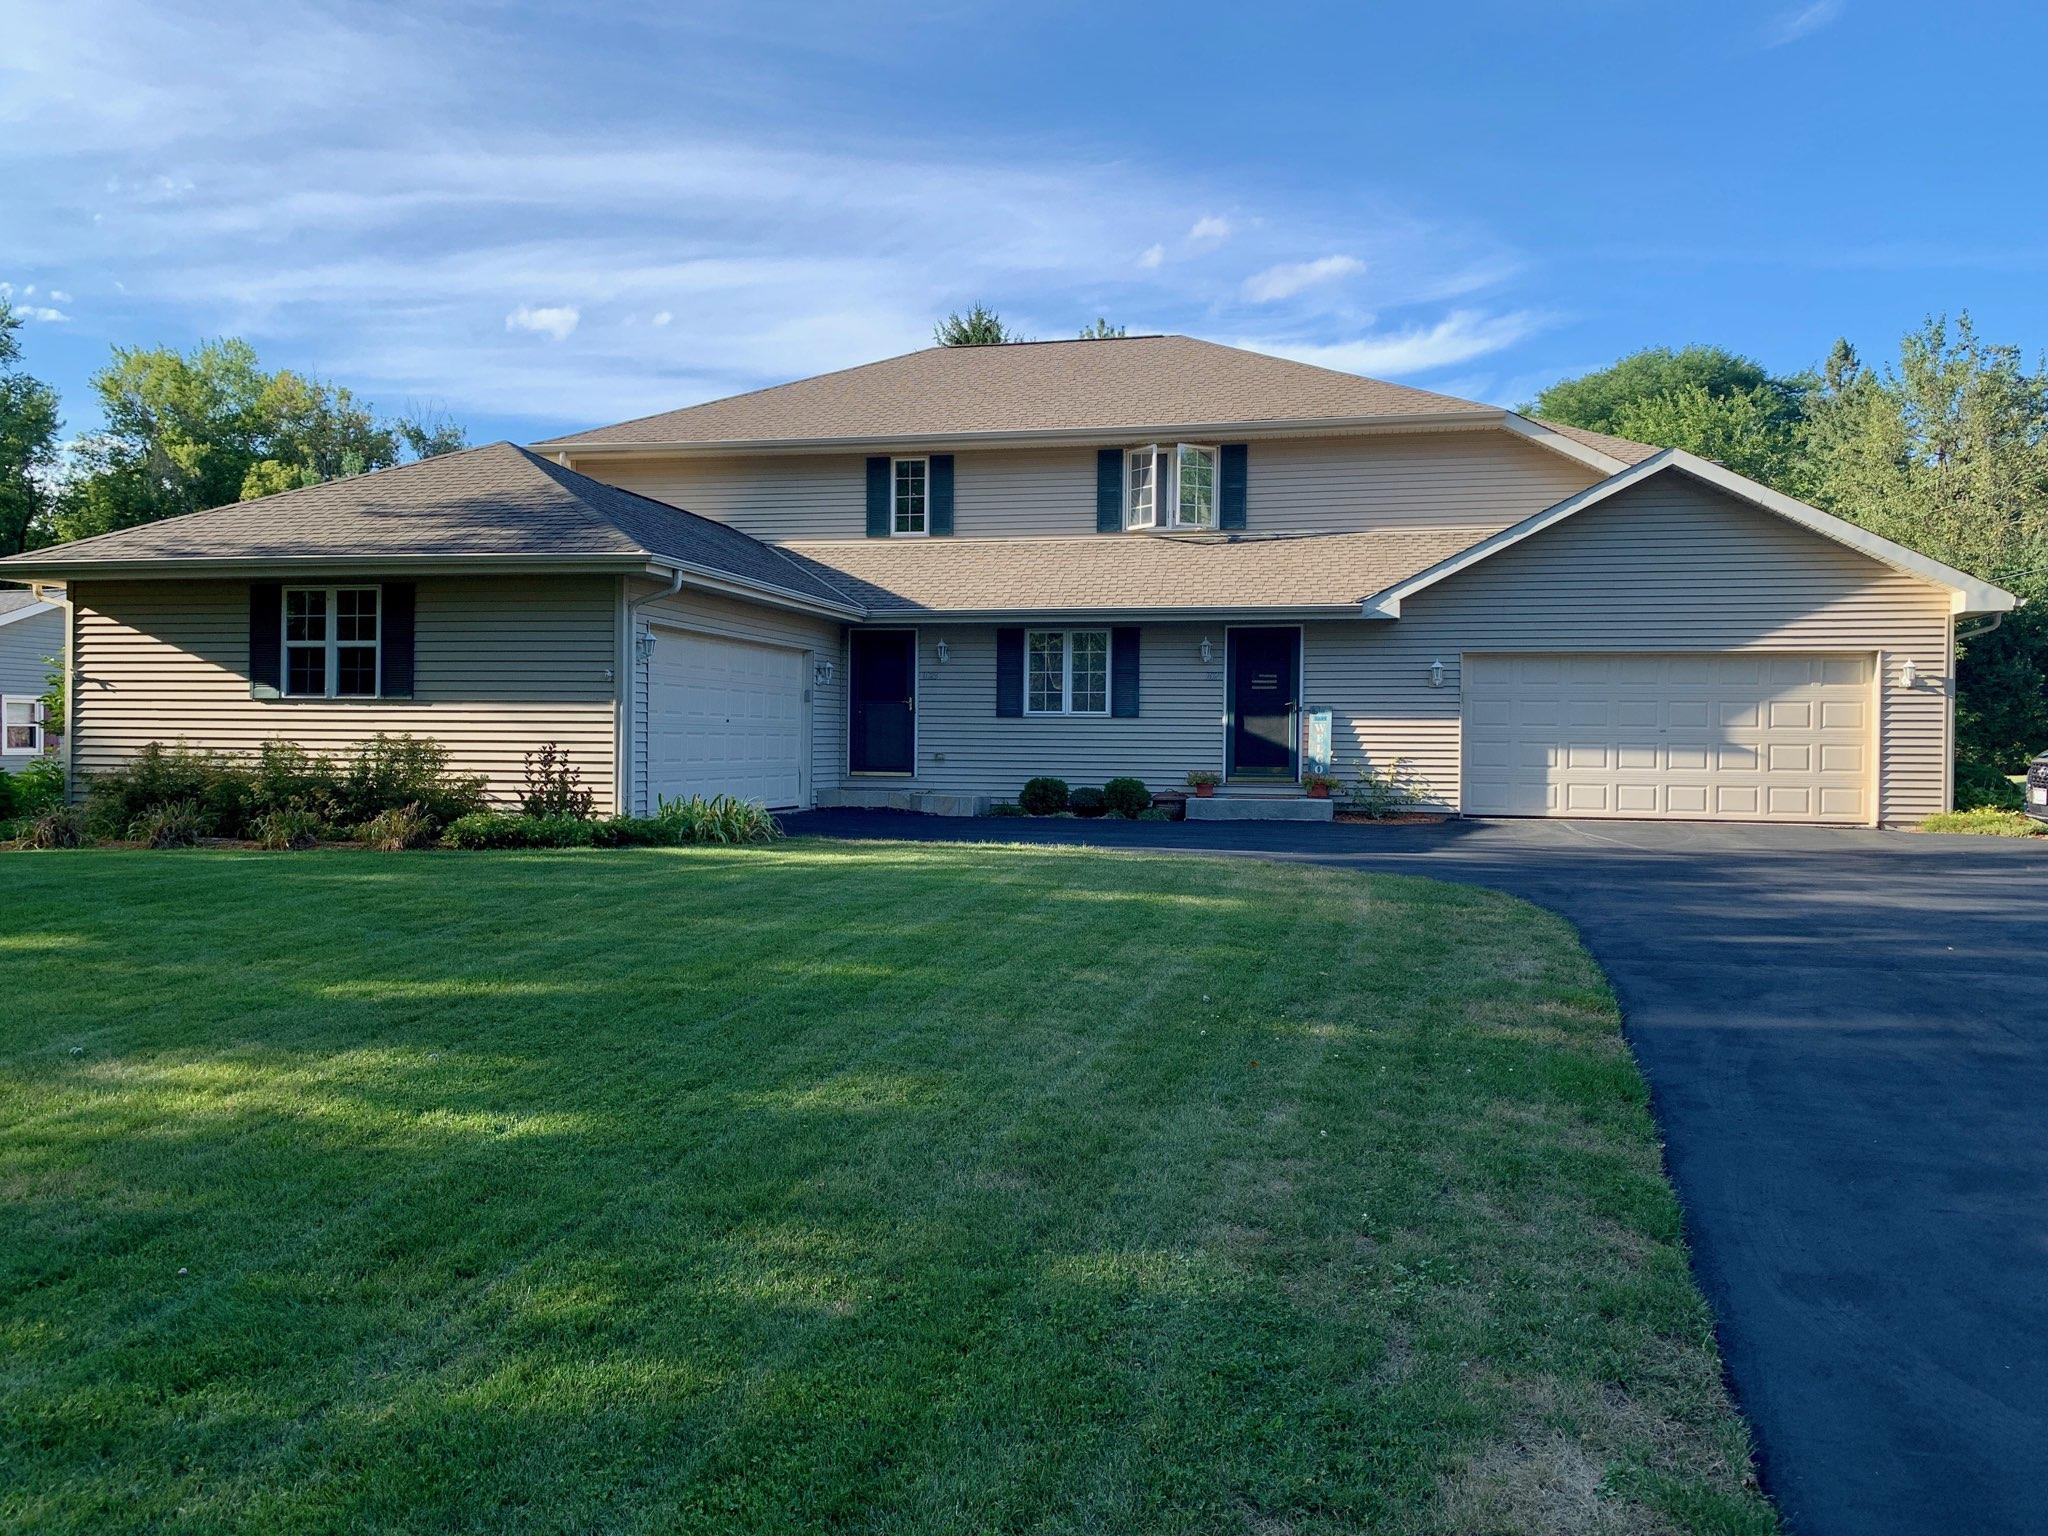 1023 Sunset Dr, Delafield, Wisconsin 53018, 3 Bedrooms Bedrooms, ,2 BathroomsBathrooms,Condominiums,For Sale,Sunset Dr,1,1707264